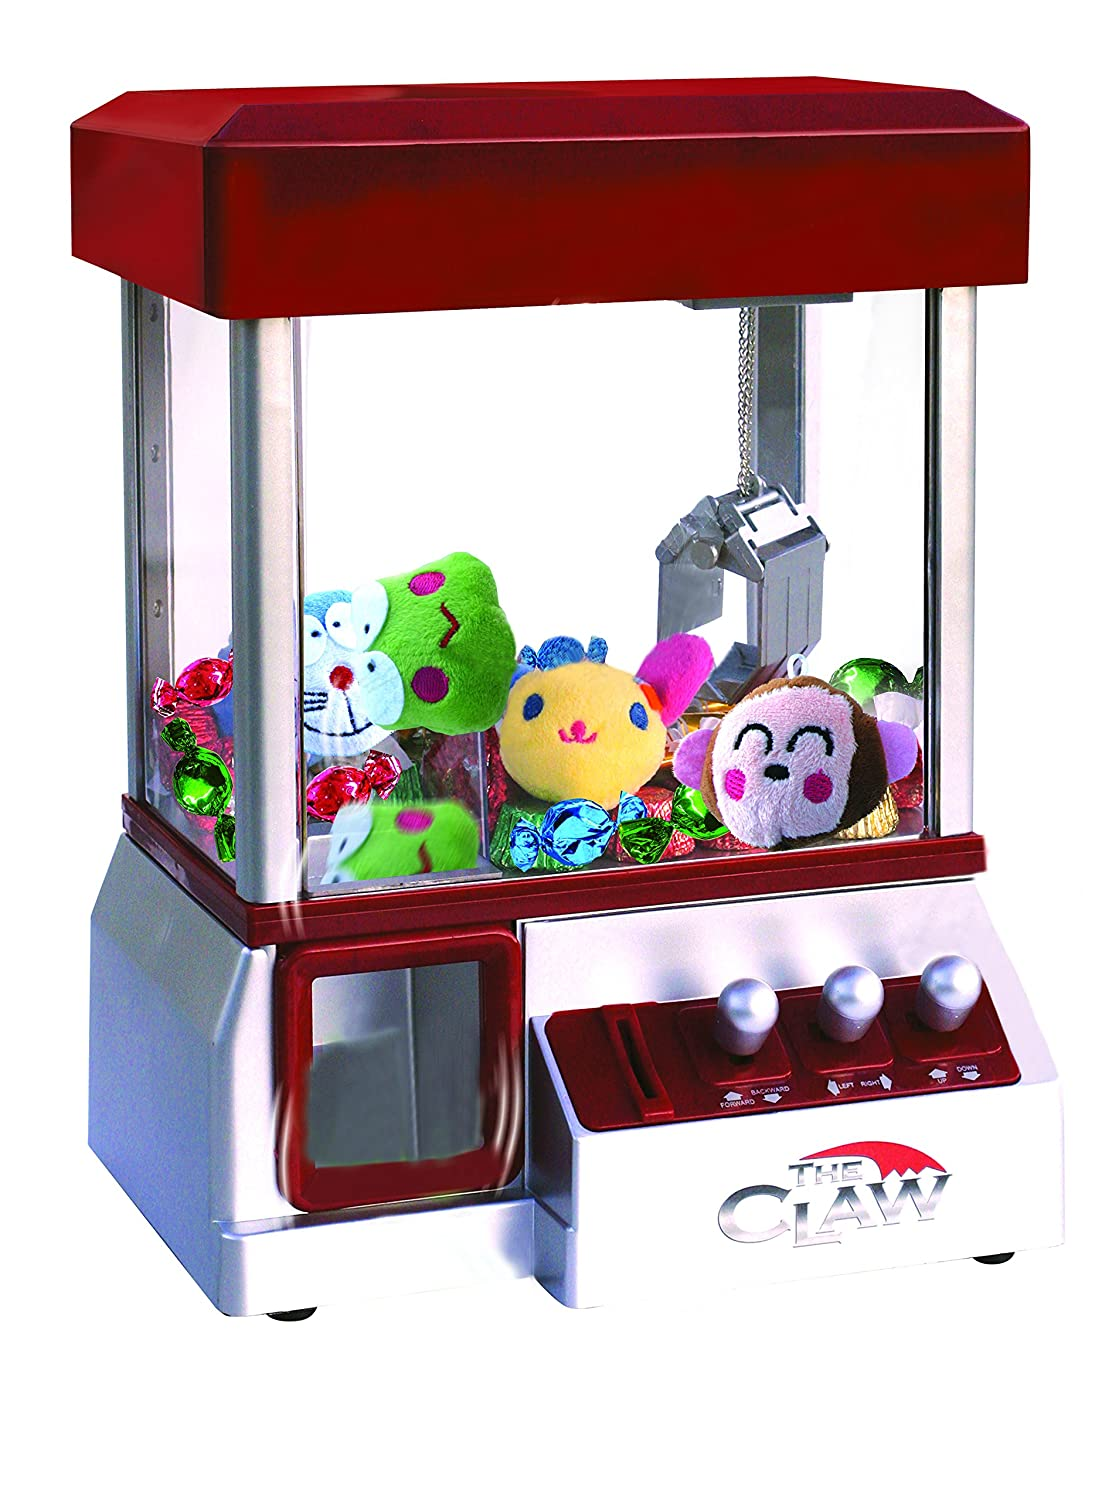 Etna The Claw Toy Grabber Machine with Sounds